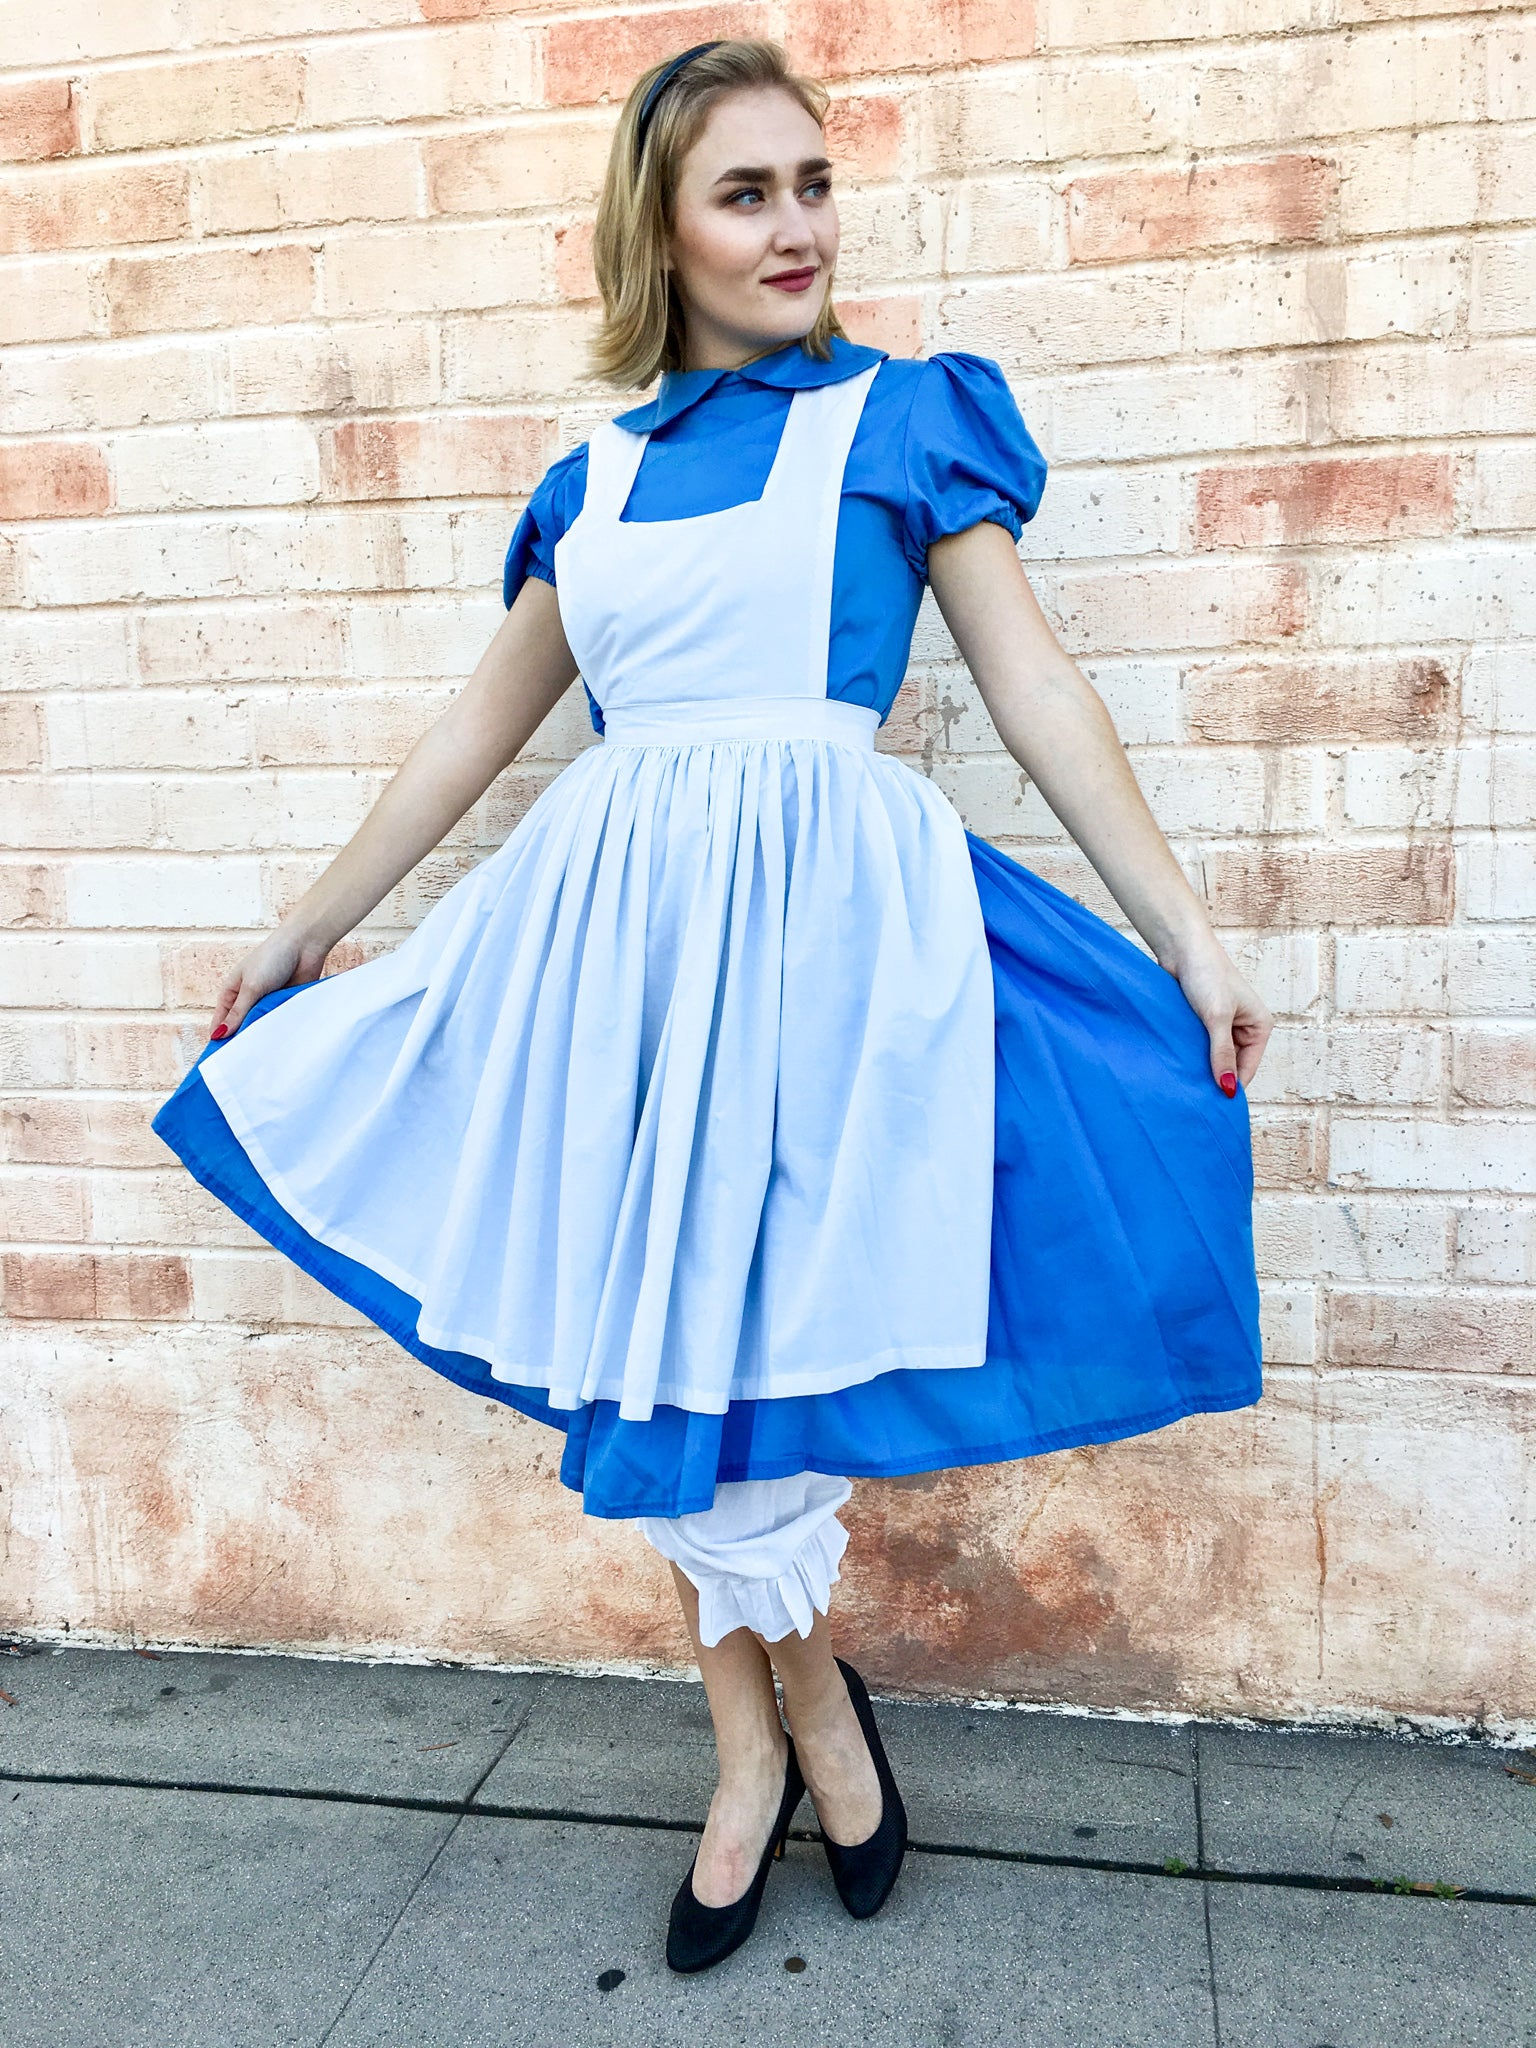 Alice in Wonderland Costume Rental